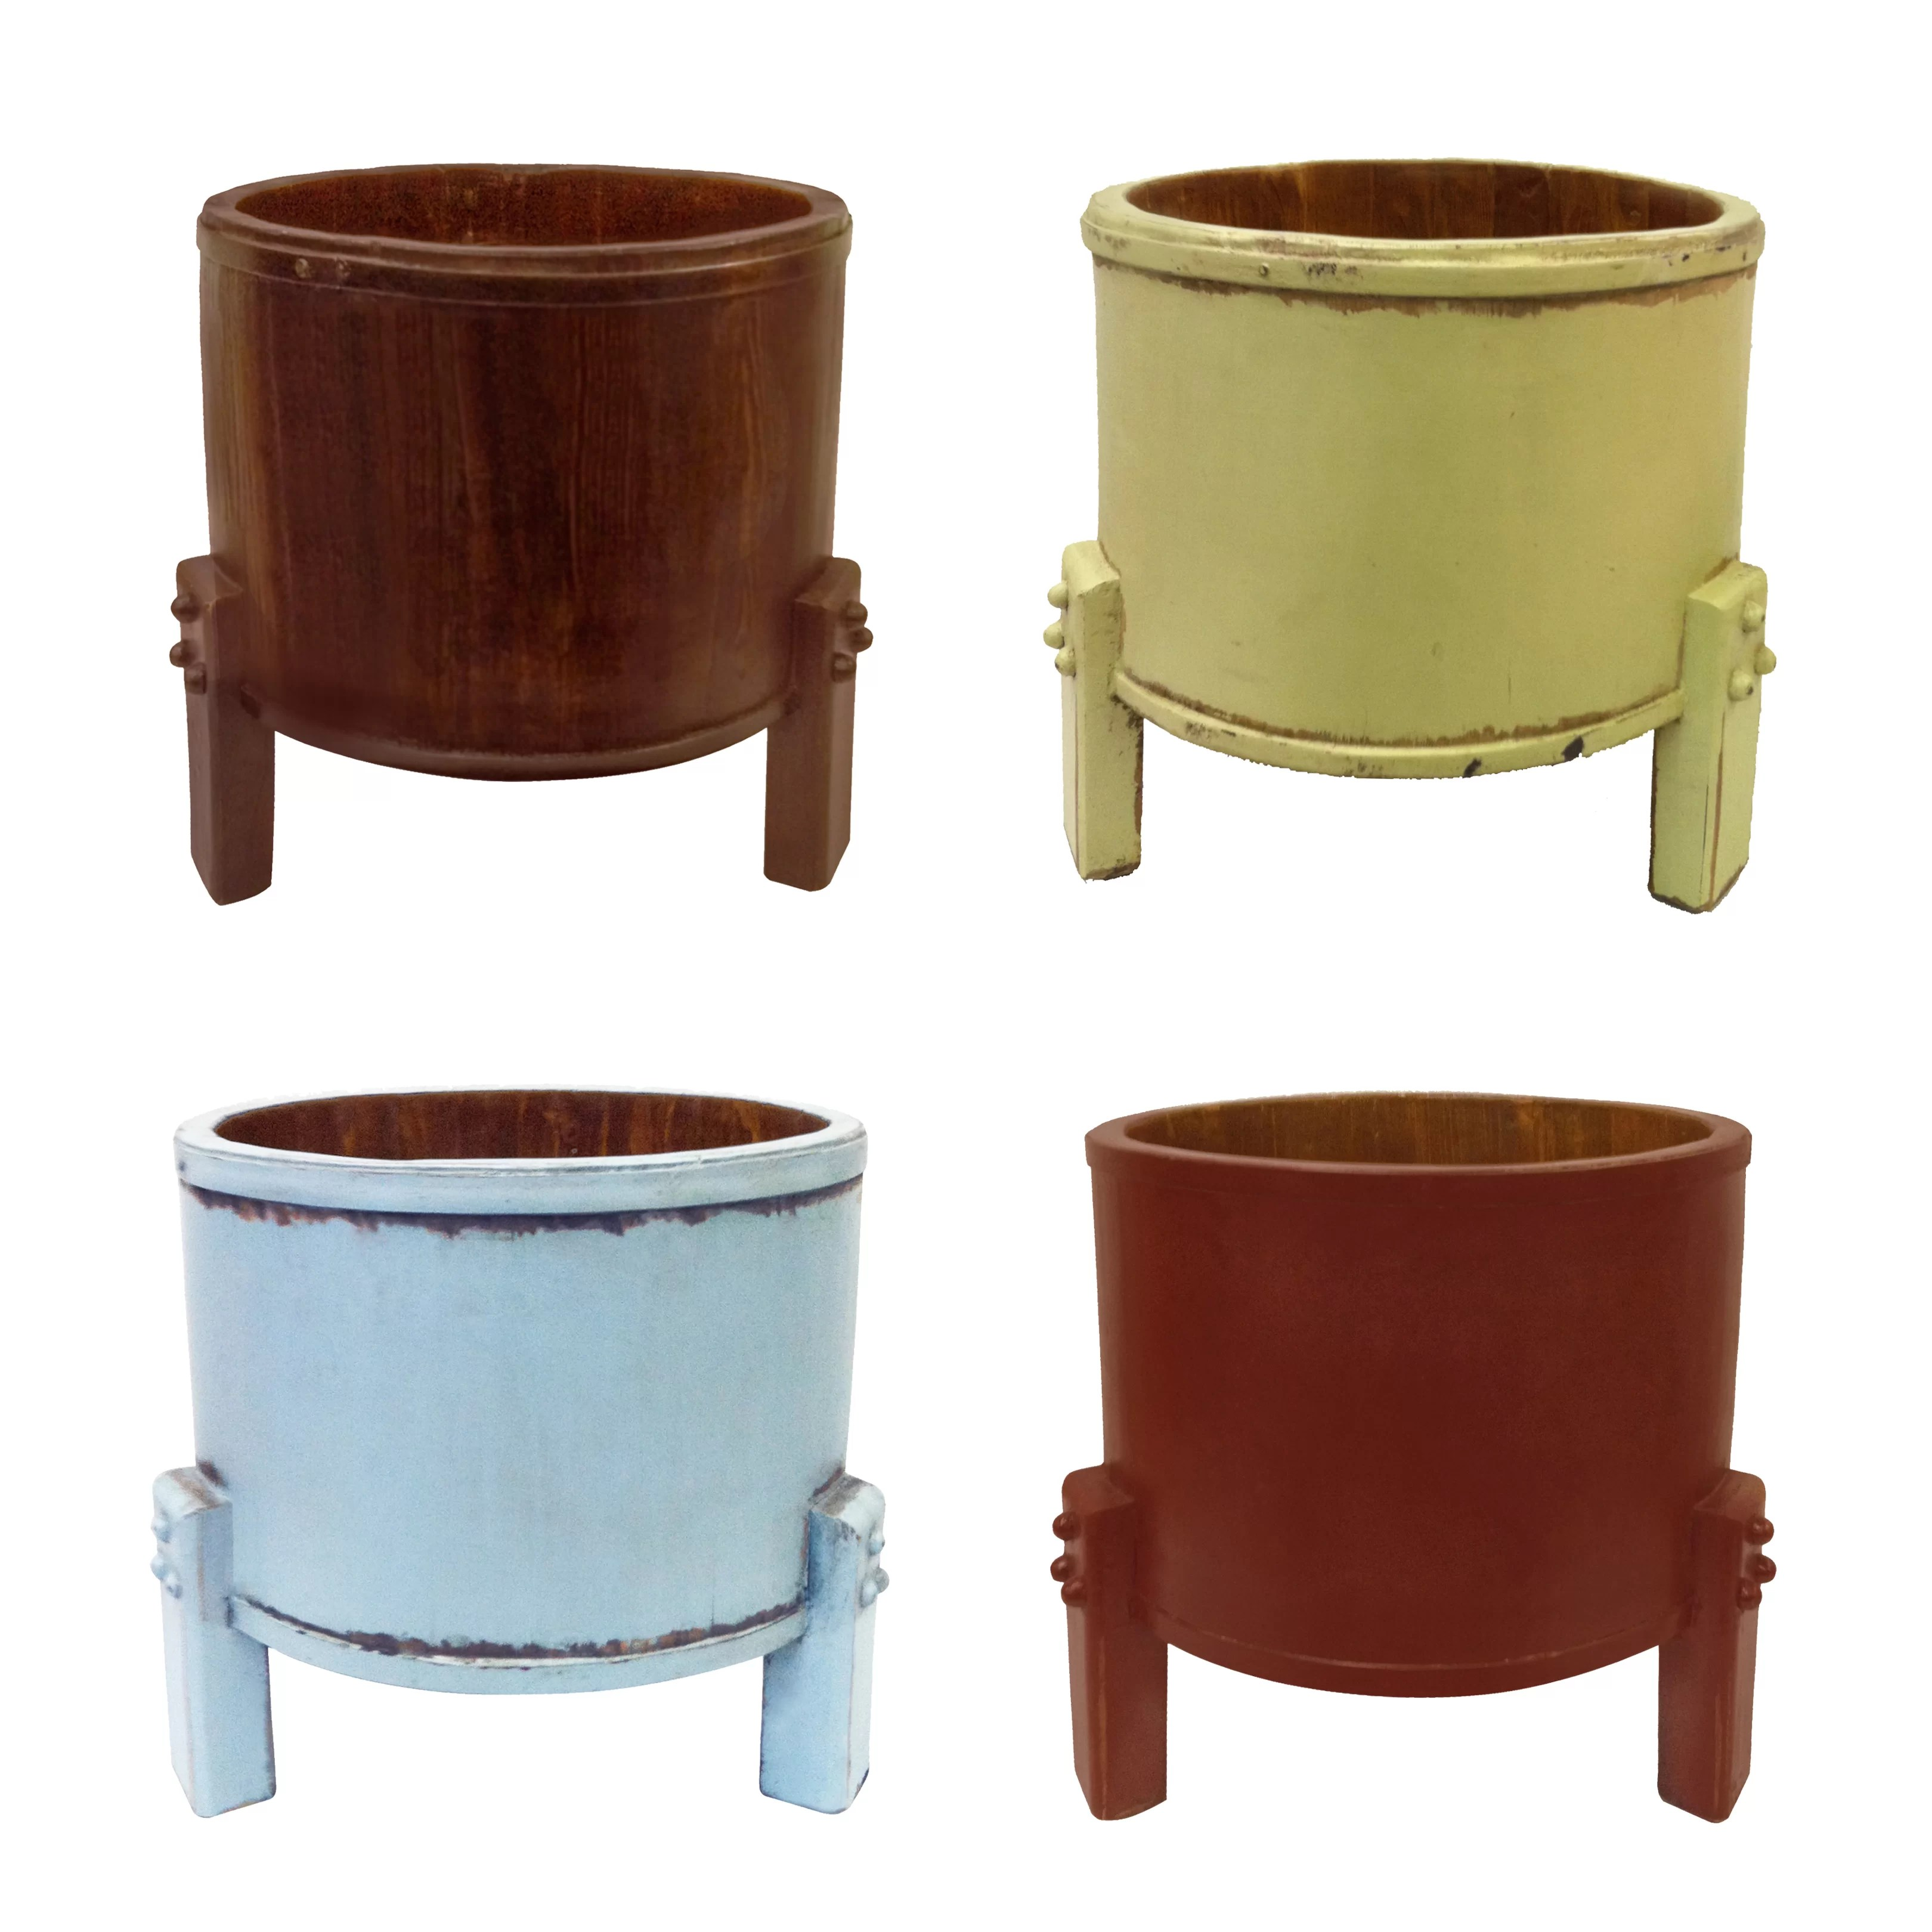 Legged Planter Antique Revival Three Legged Planter Bucket And Reviews